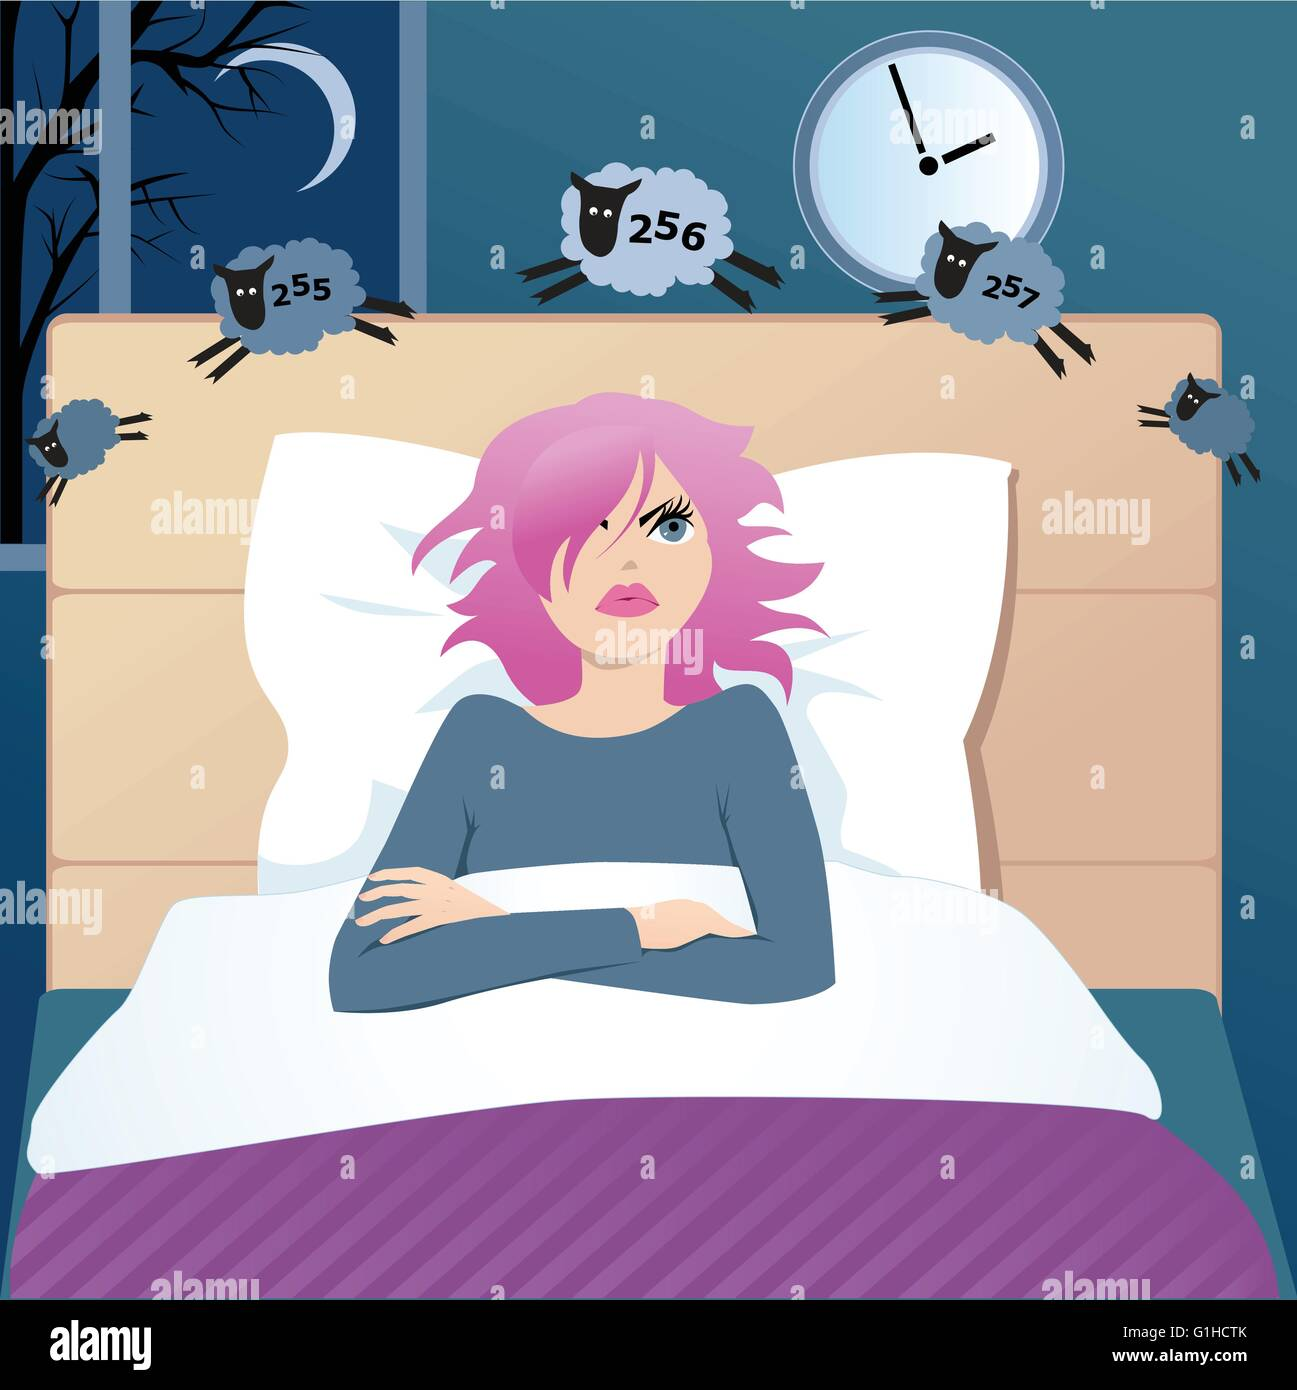 Cute Funny Cartoon Girl With Insomnia Lying In A Bed Late At Night,  Counting Sheep, Trying To Fall Asleep